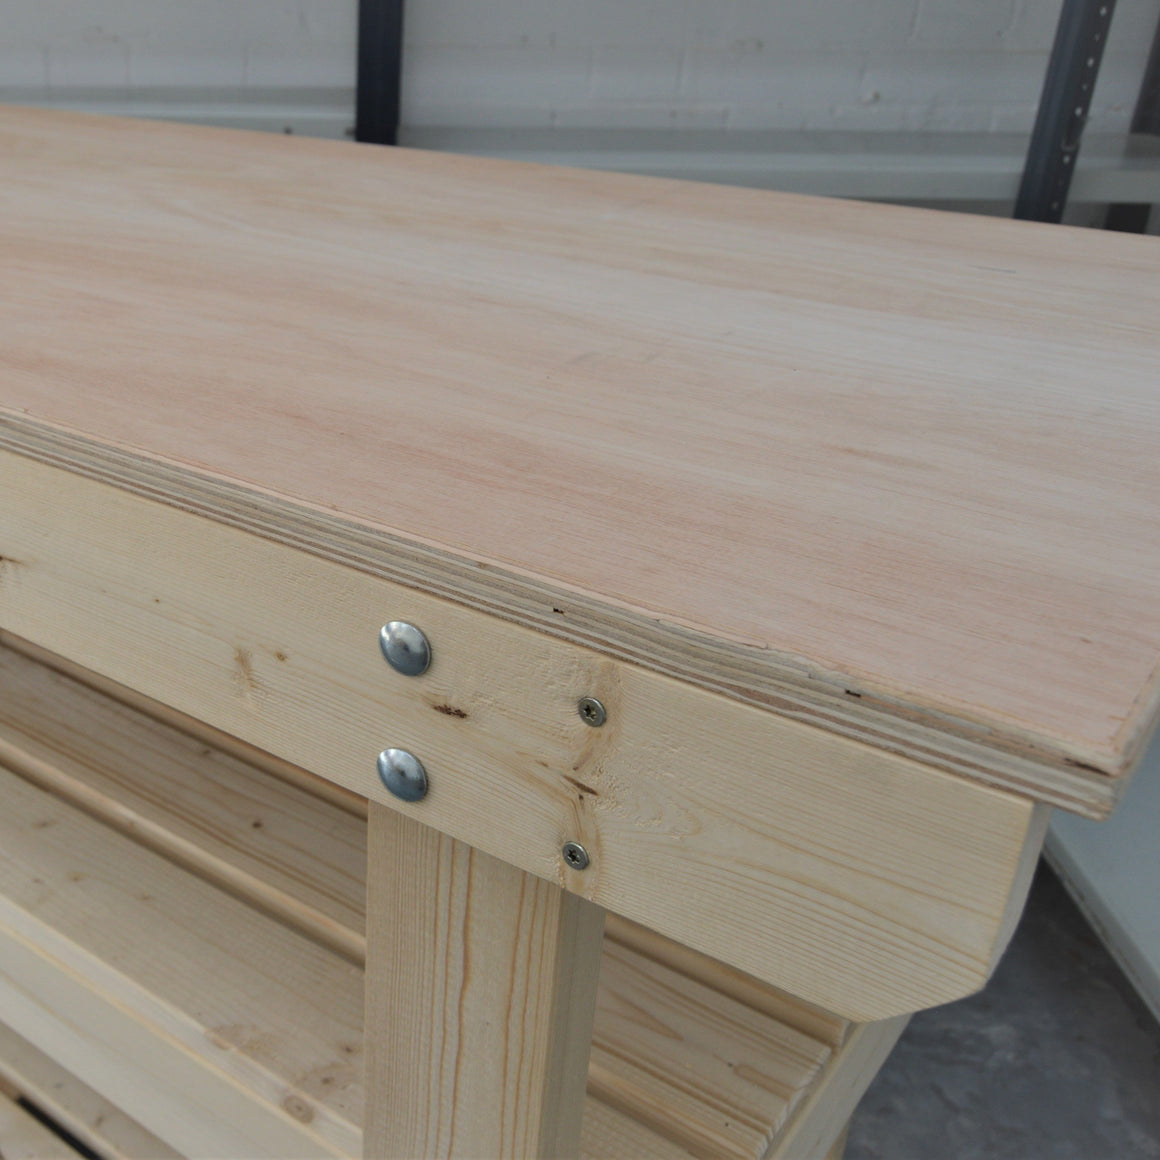 Change to a plywood (hardwood) worktop